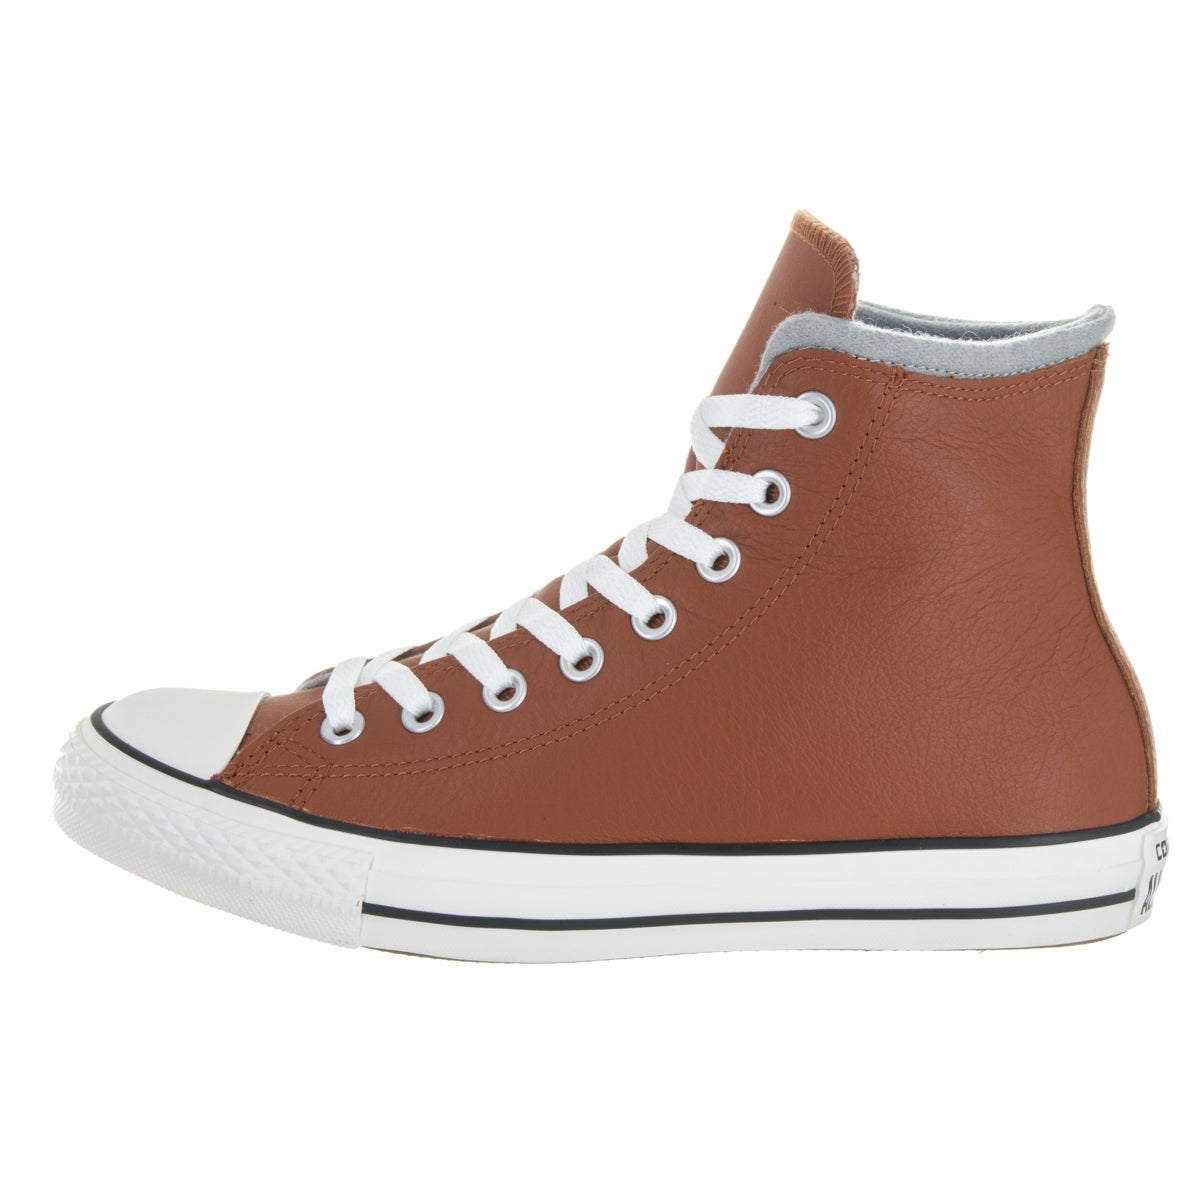 510bca7ee221 Shop Converse Unisex Chuck Taylor All Star Hi Basketball Shoe - Free  Shipping Today - Overstock.com - 13476363